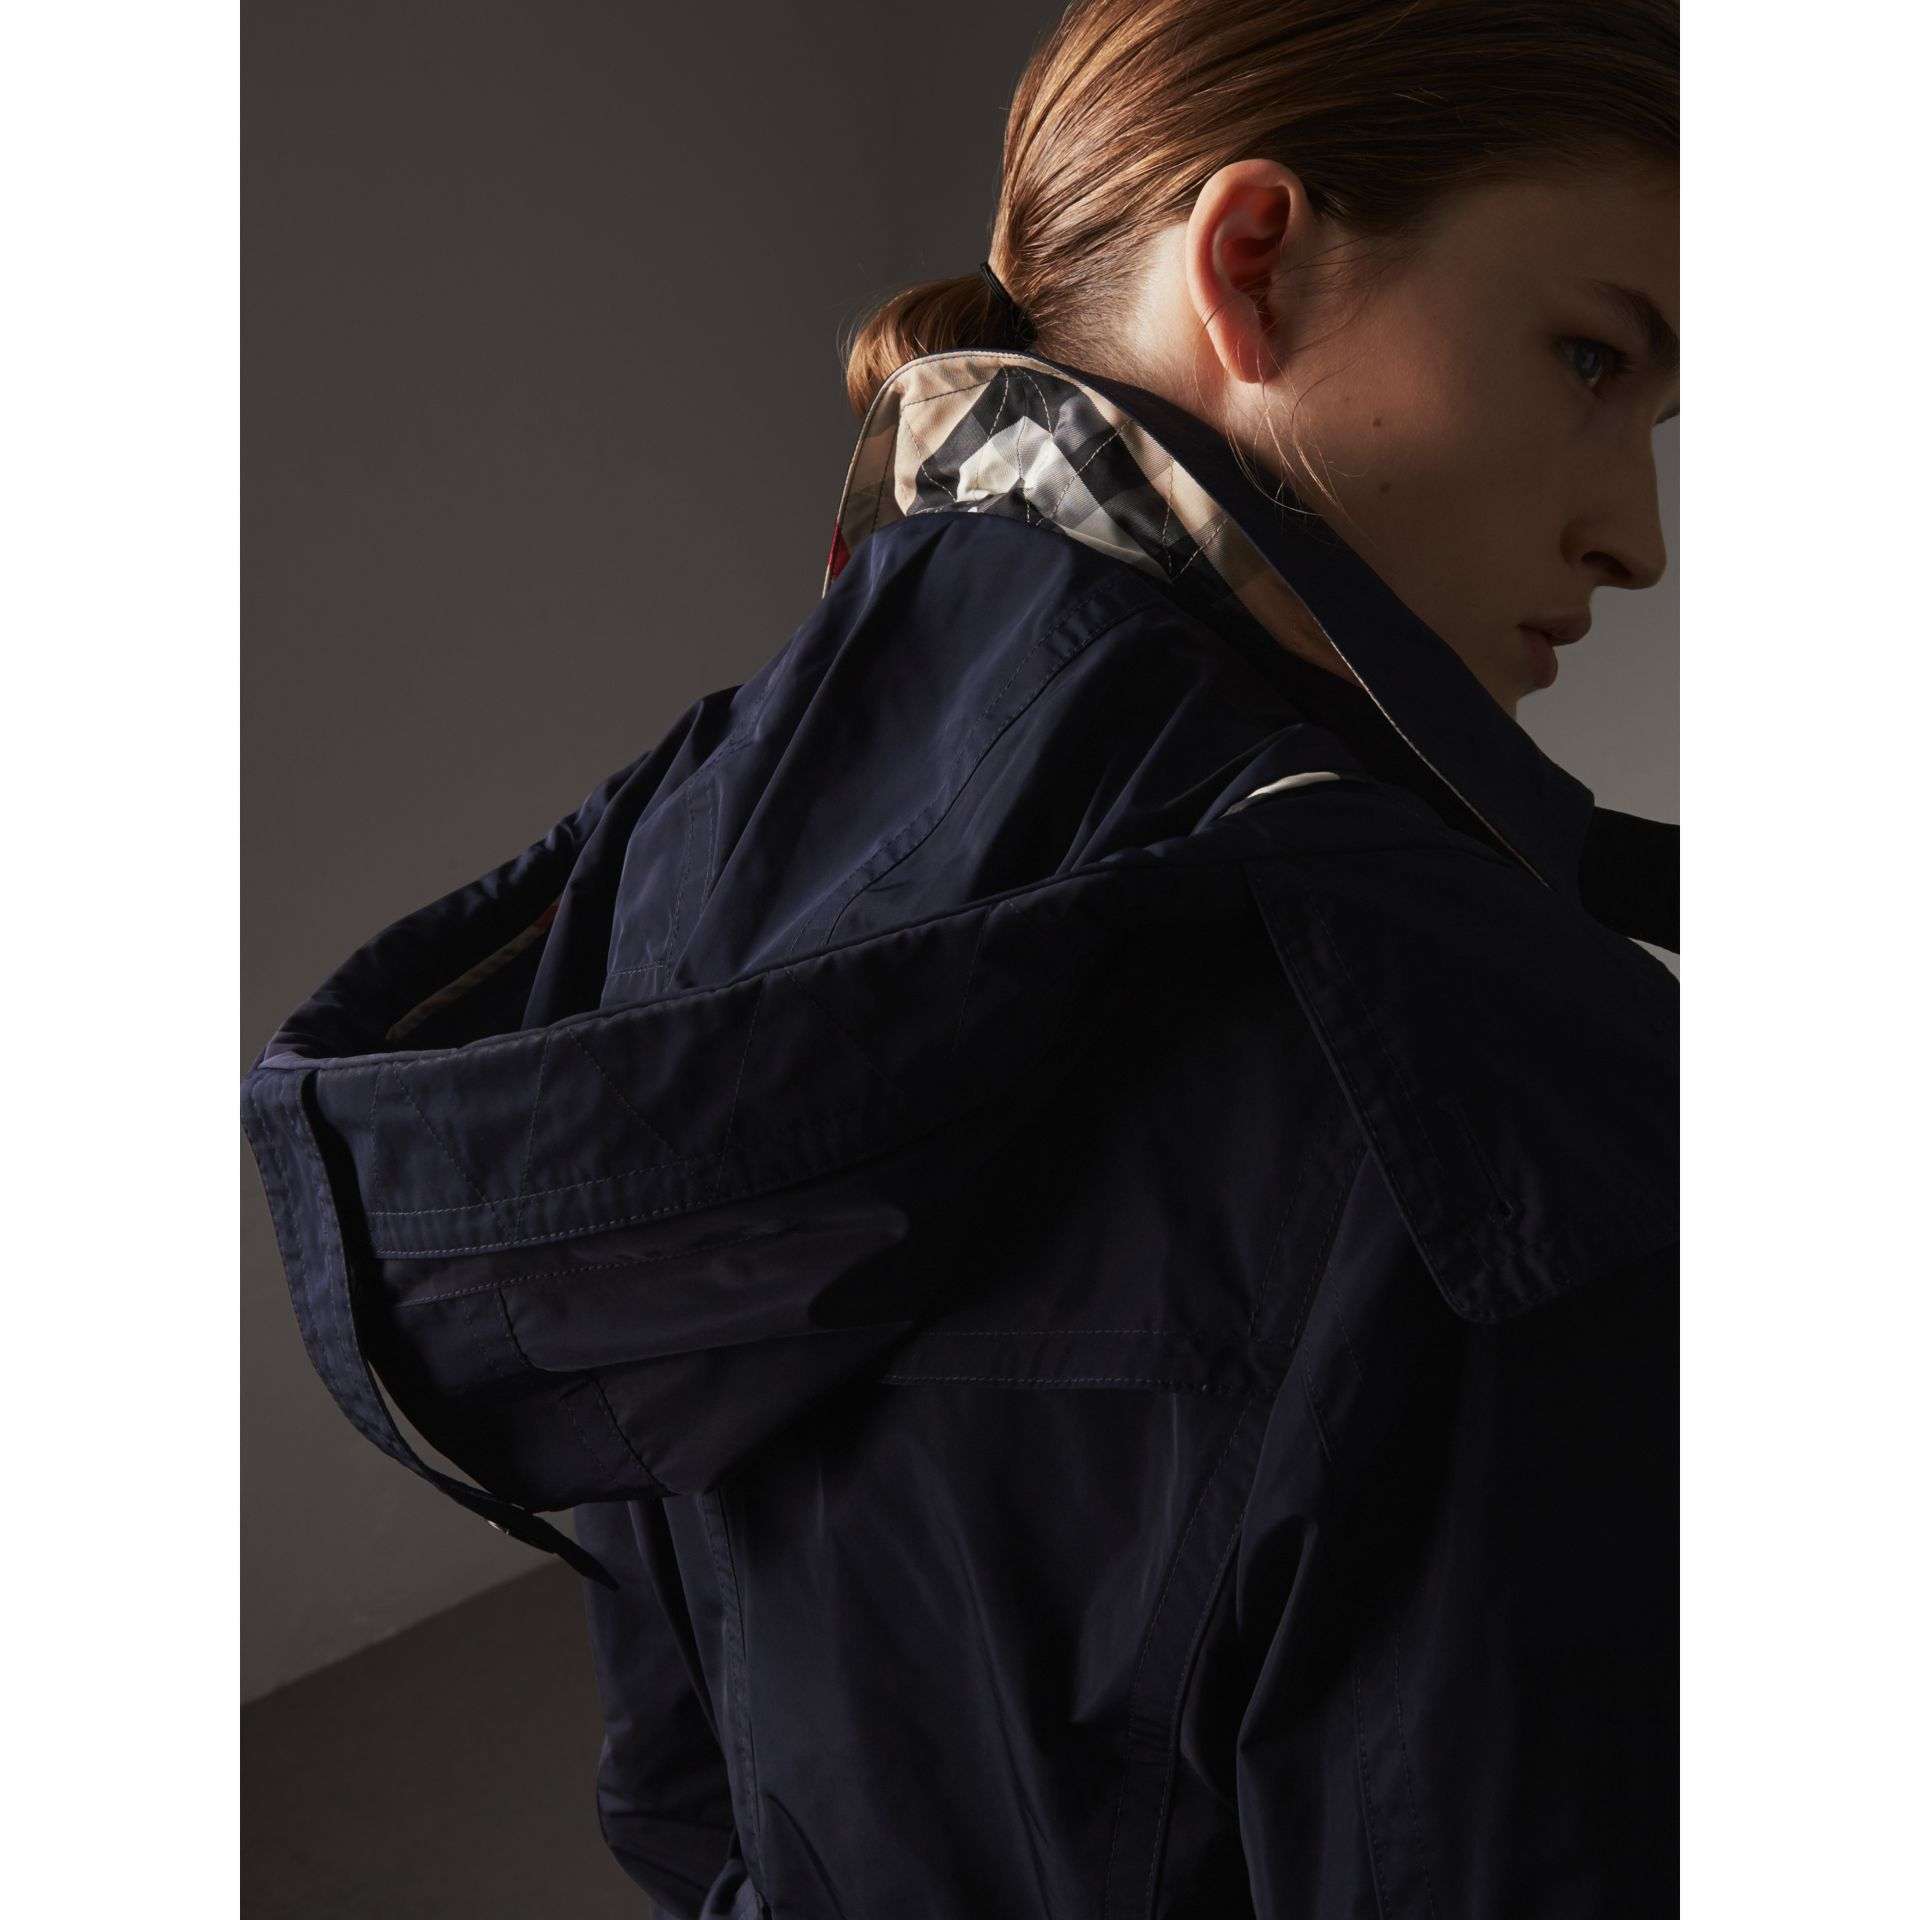 Taffeta Trench Coat with Detachable Hood in Navy - Women | Burberry Australia - gallery image 4